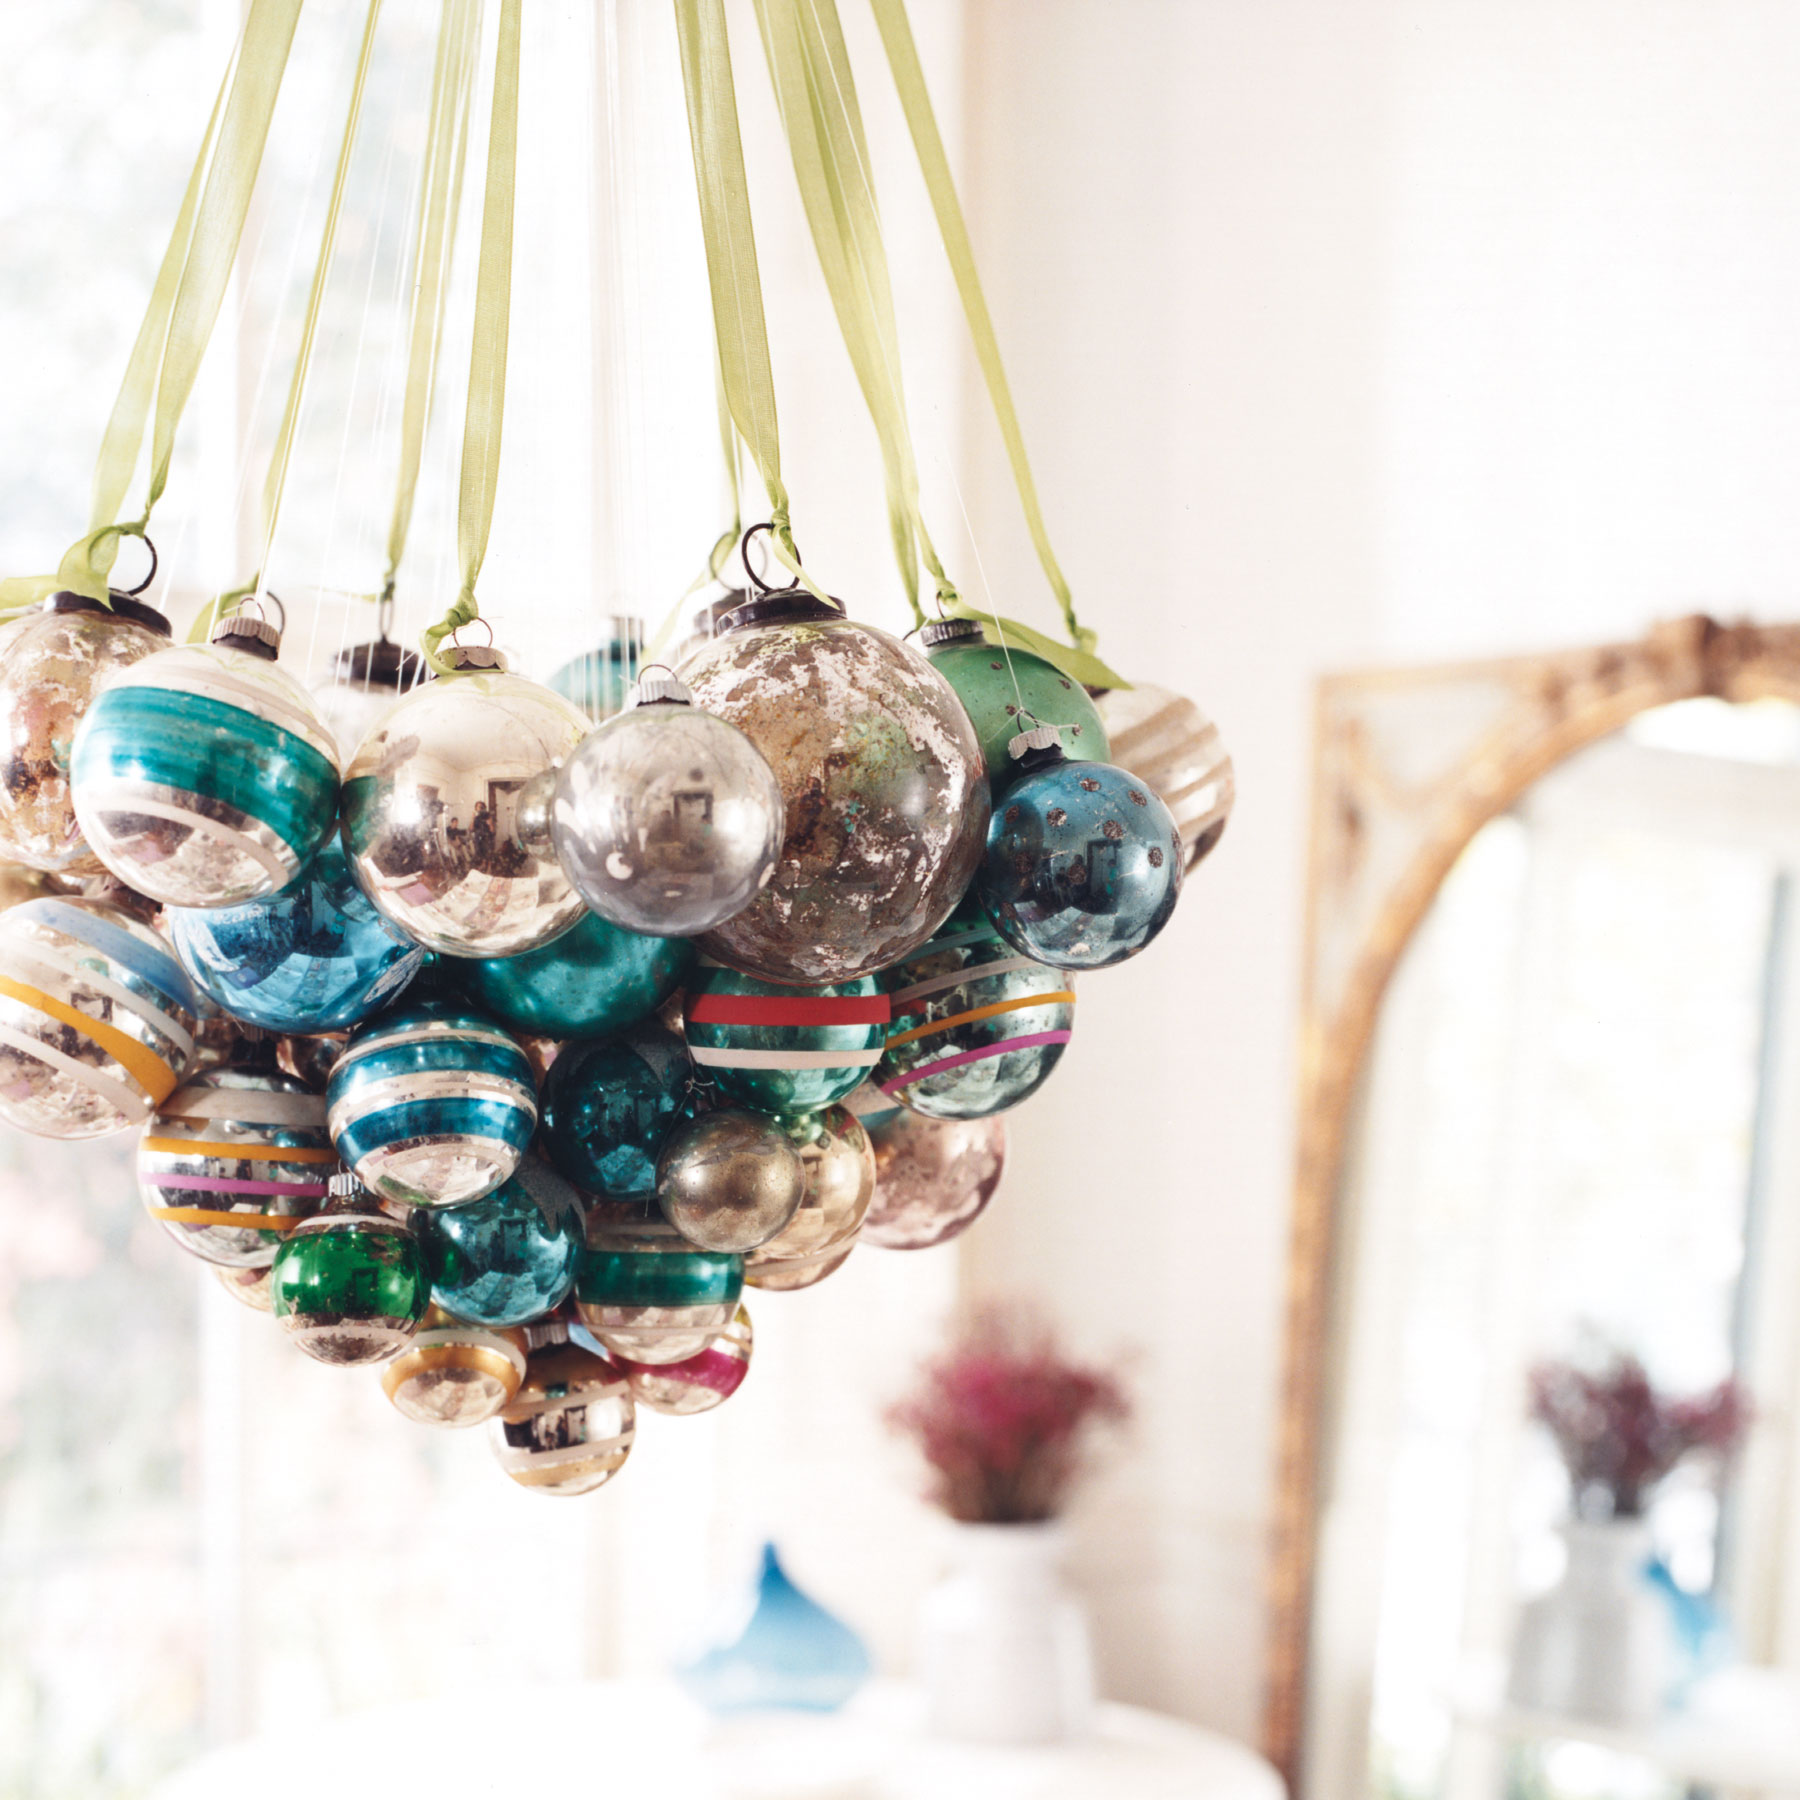 Christmas crafts ideas - Ornament Chandelier